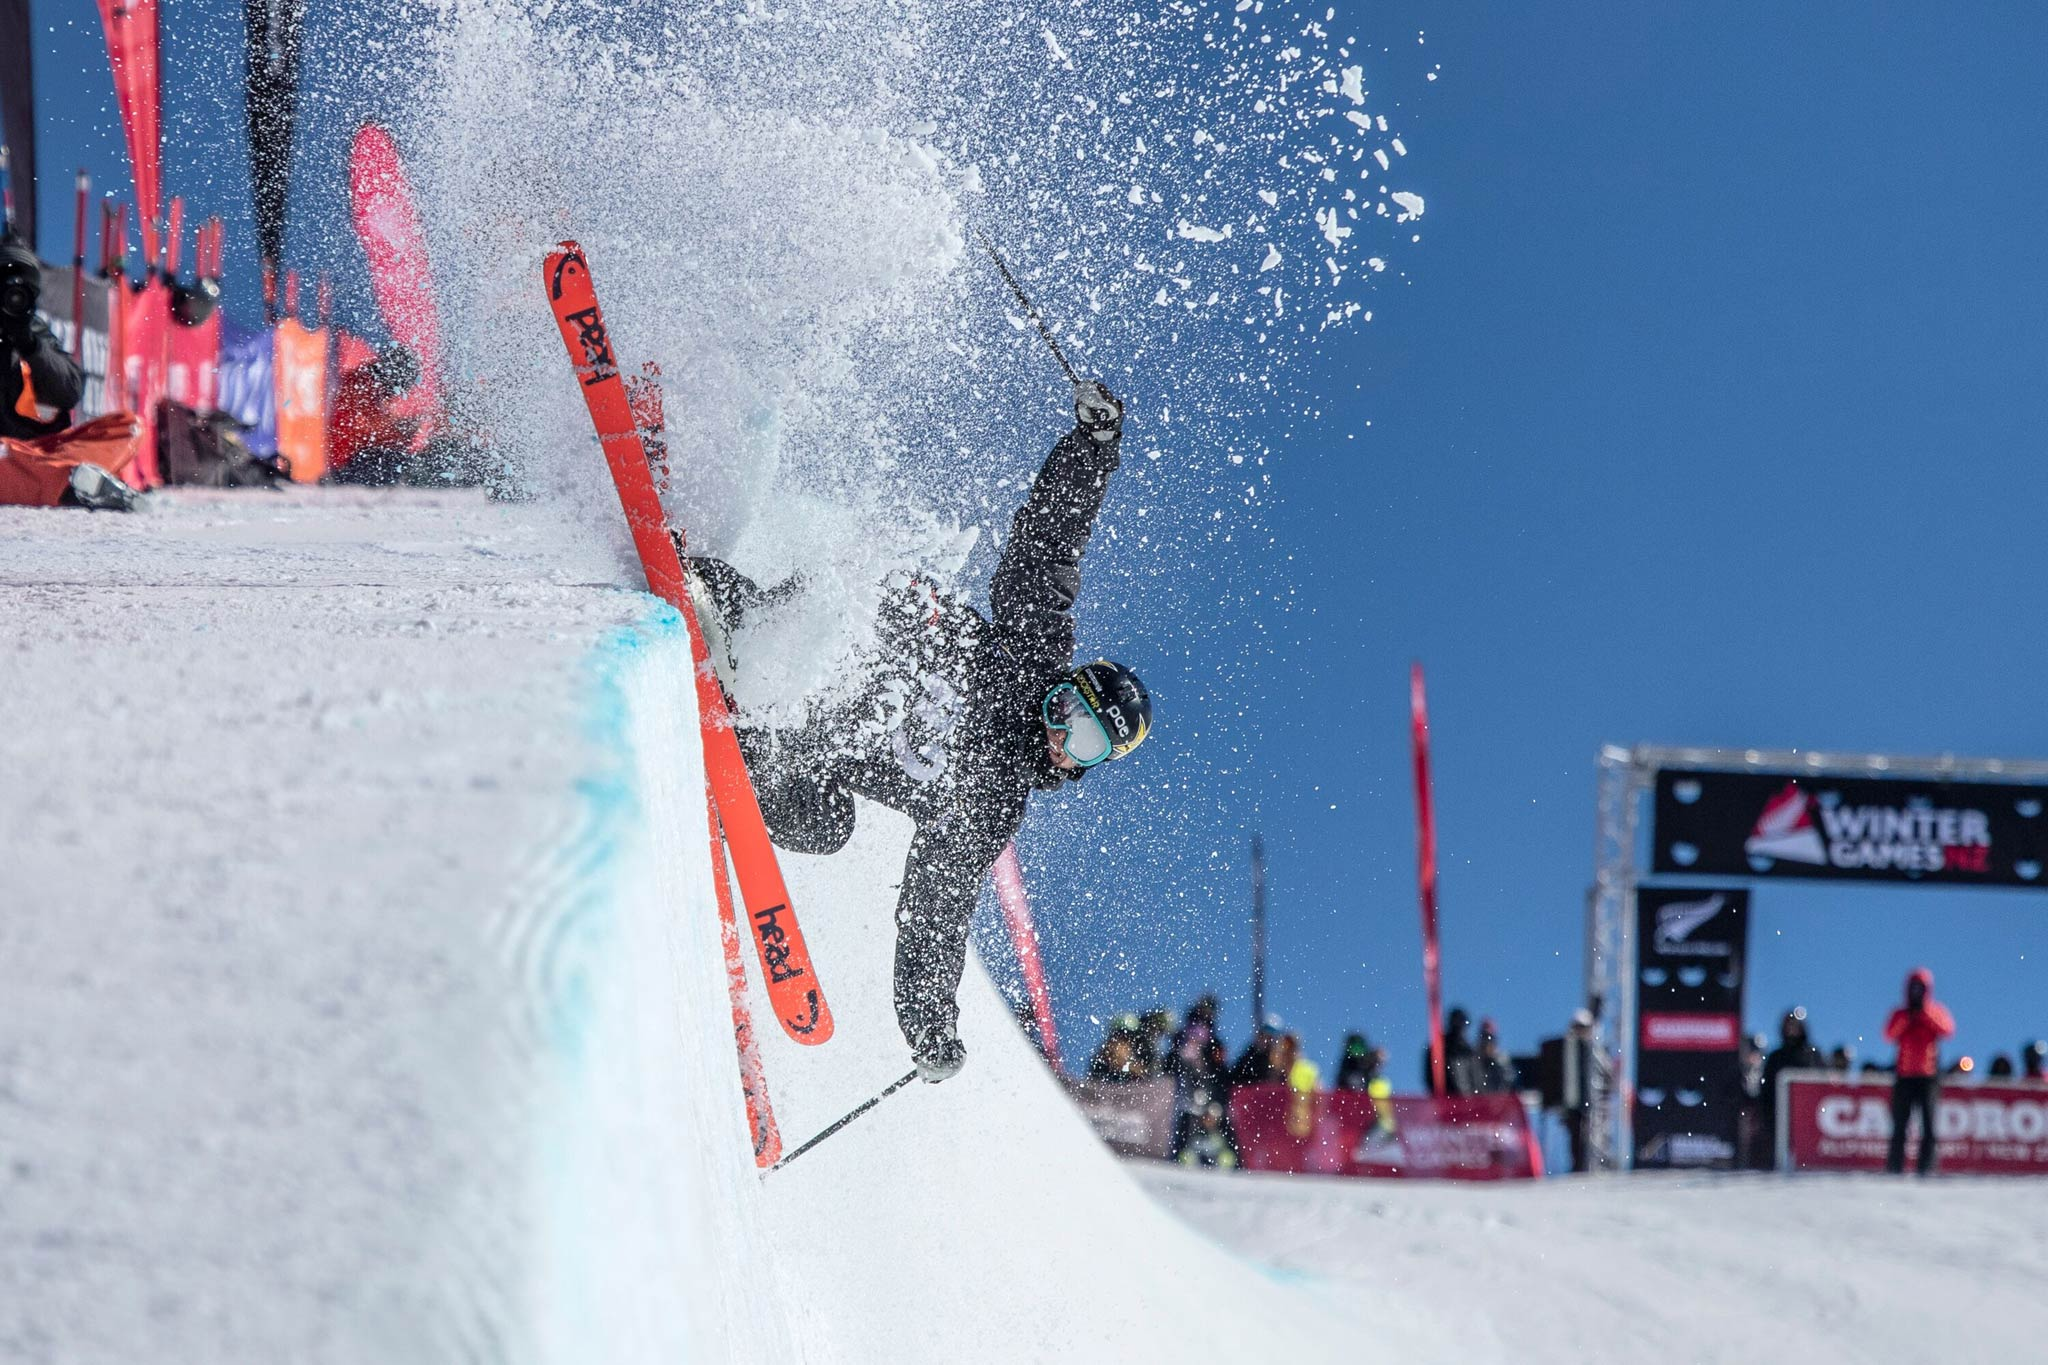 Foto: FIS Freestyle / Iain McGregor